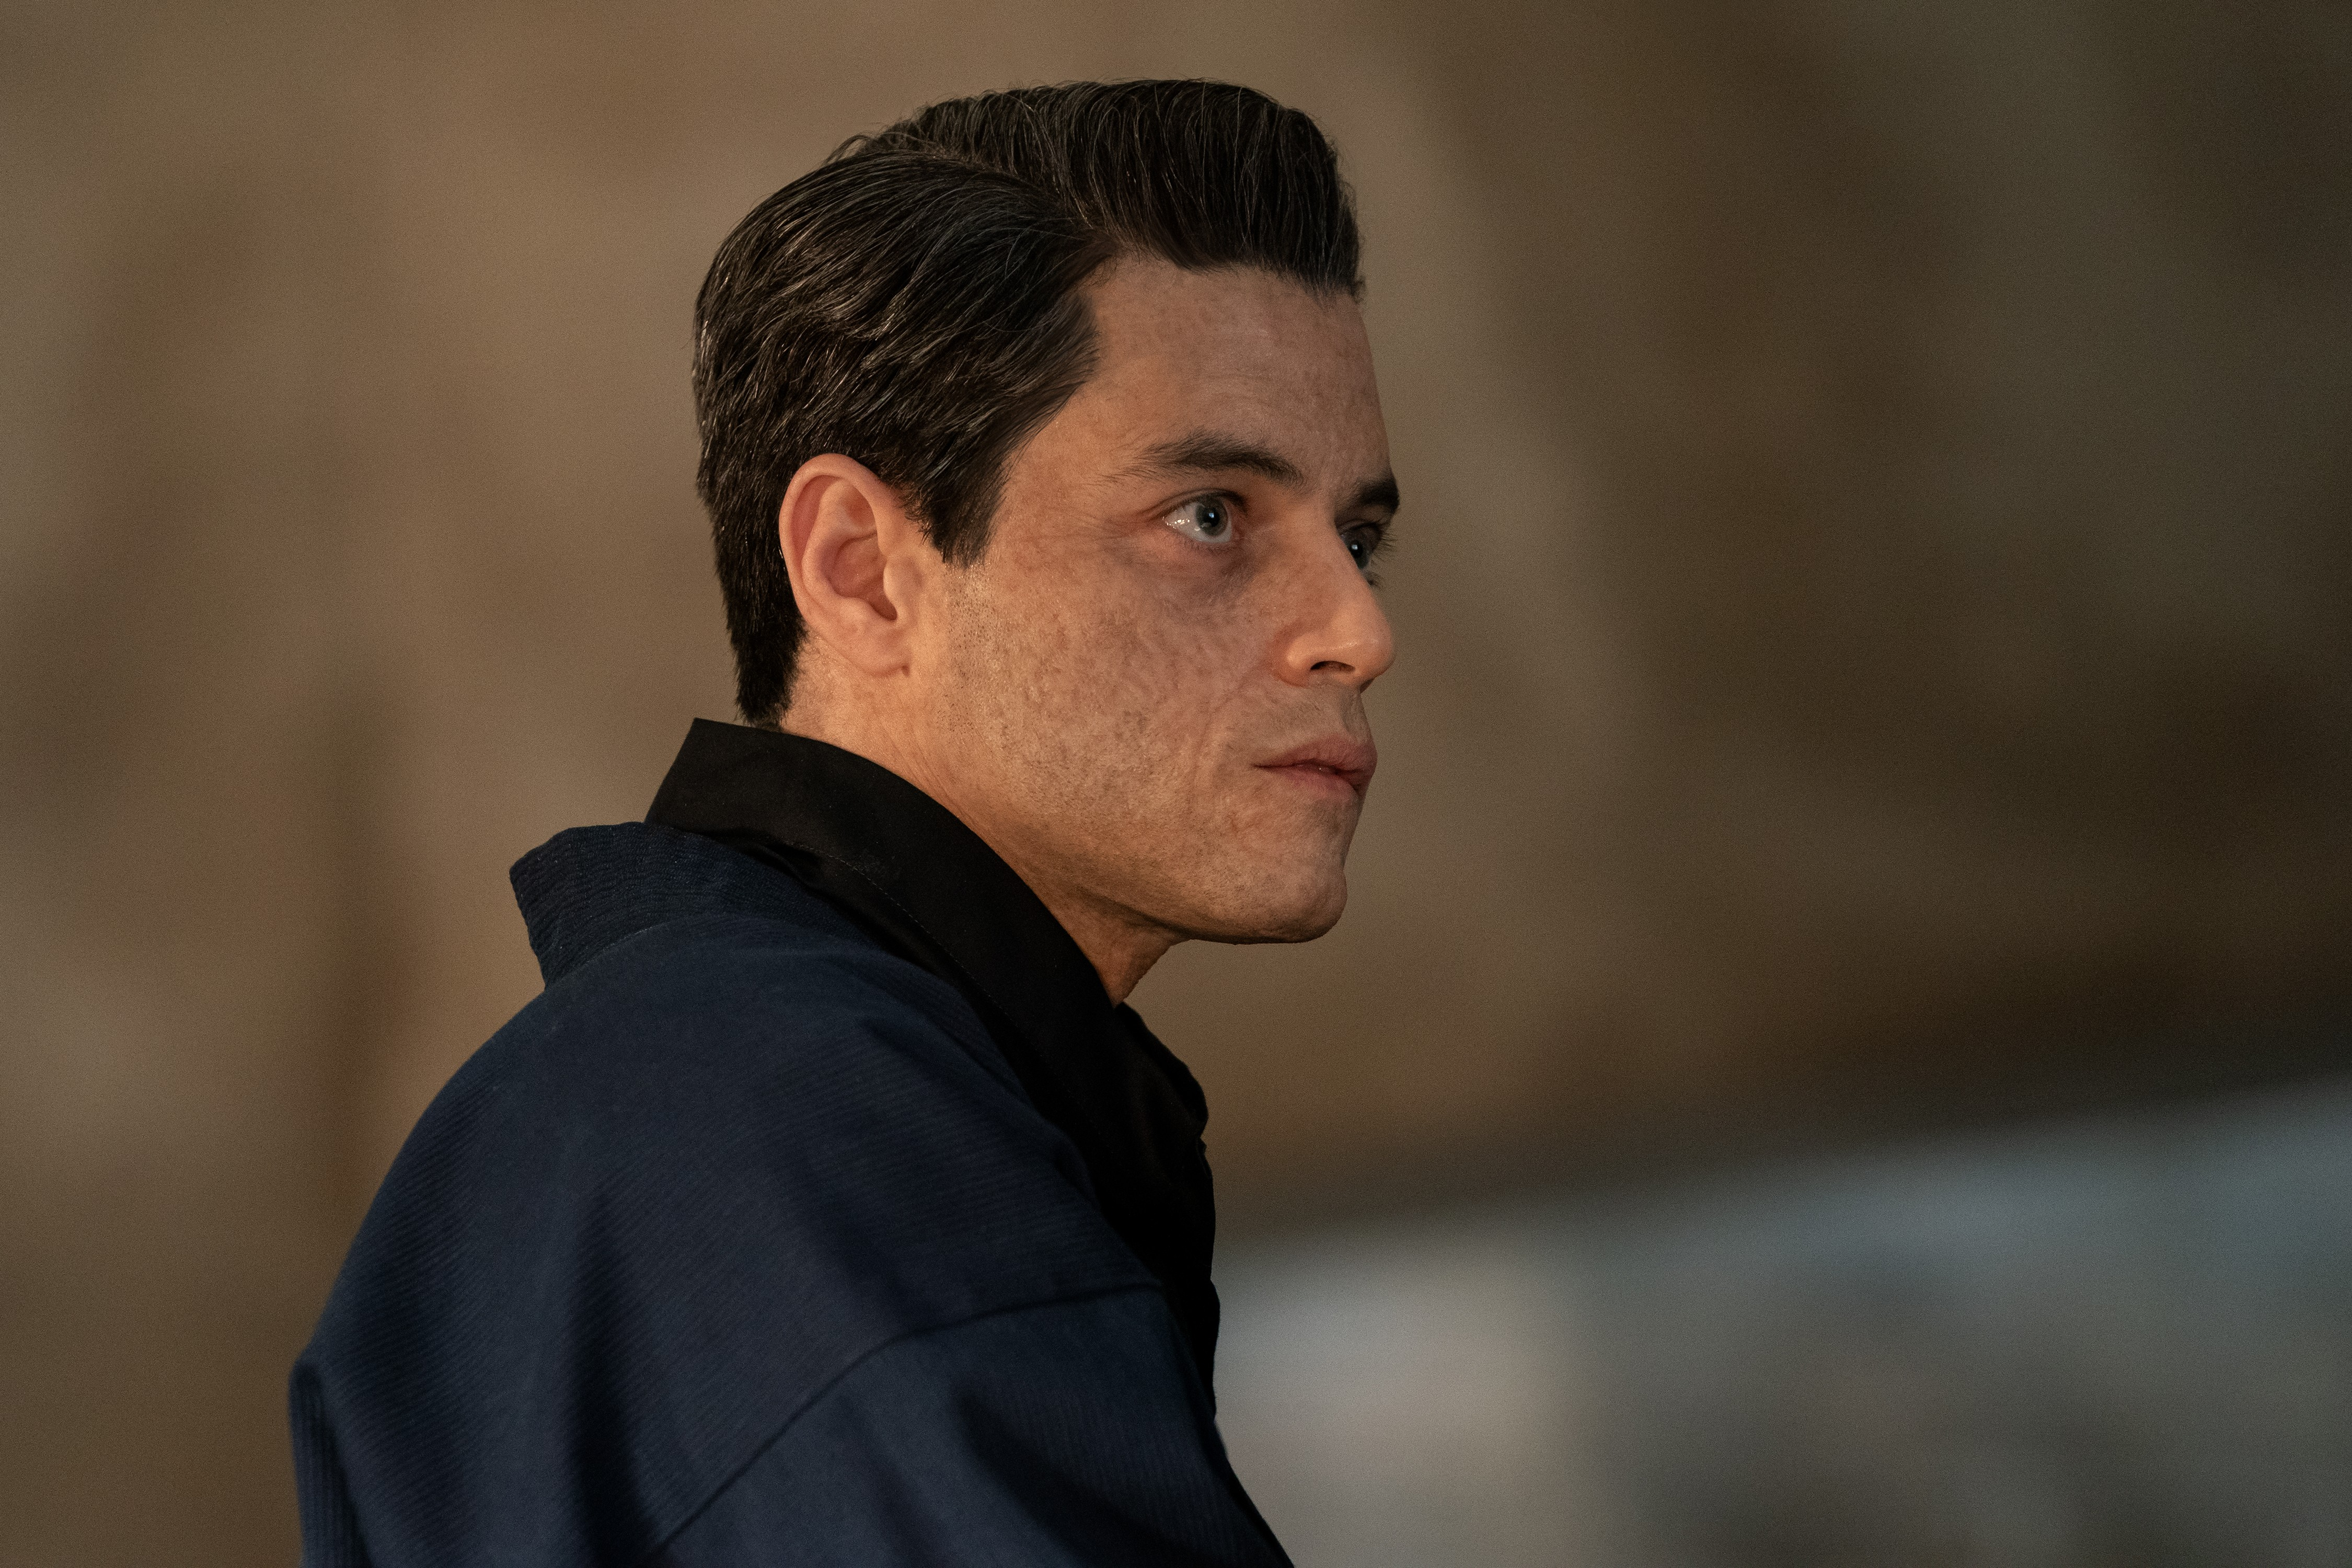 Safin (Rami Malek) in No Time to Die